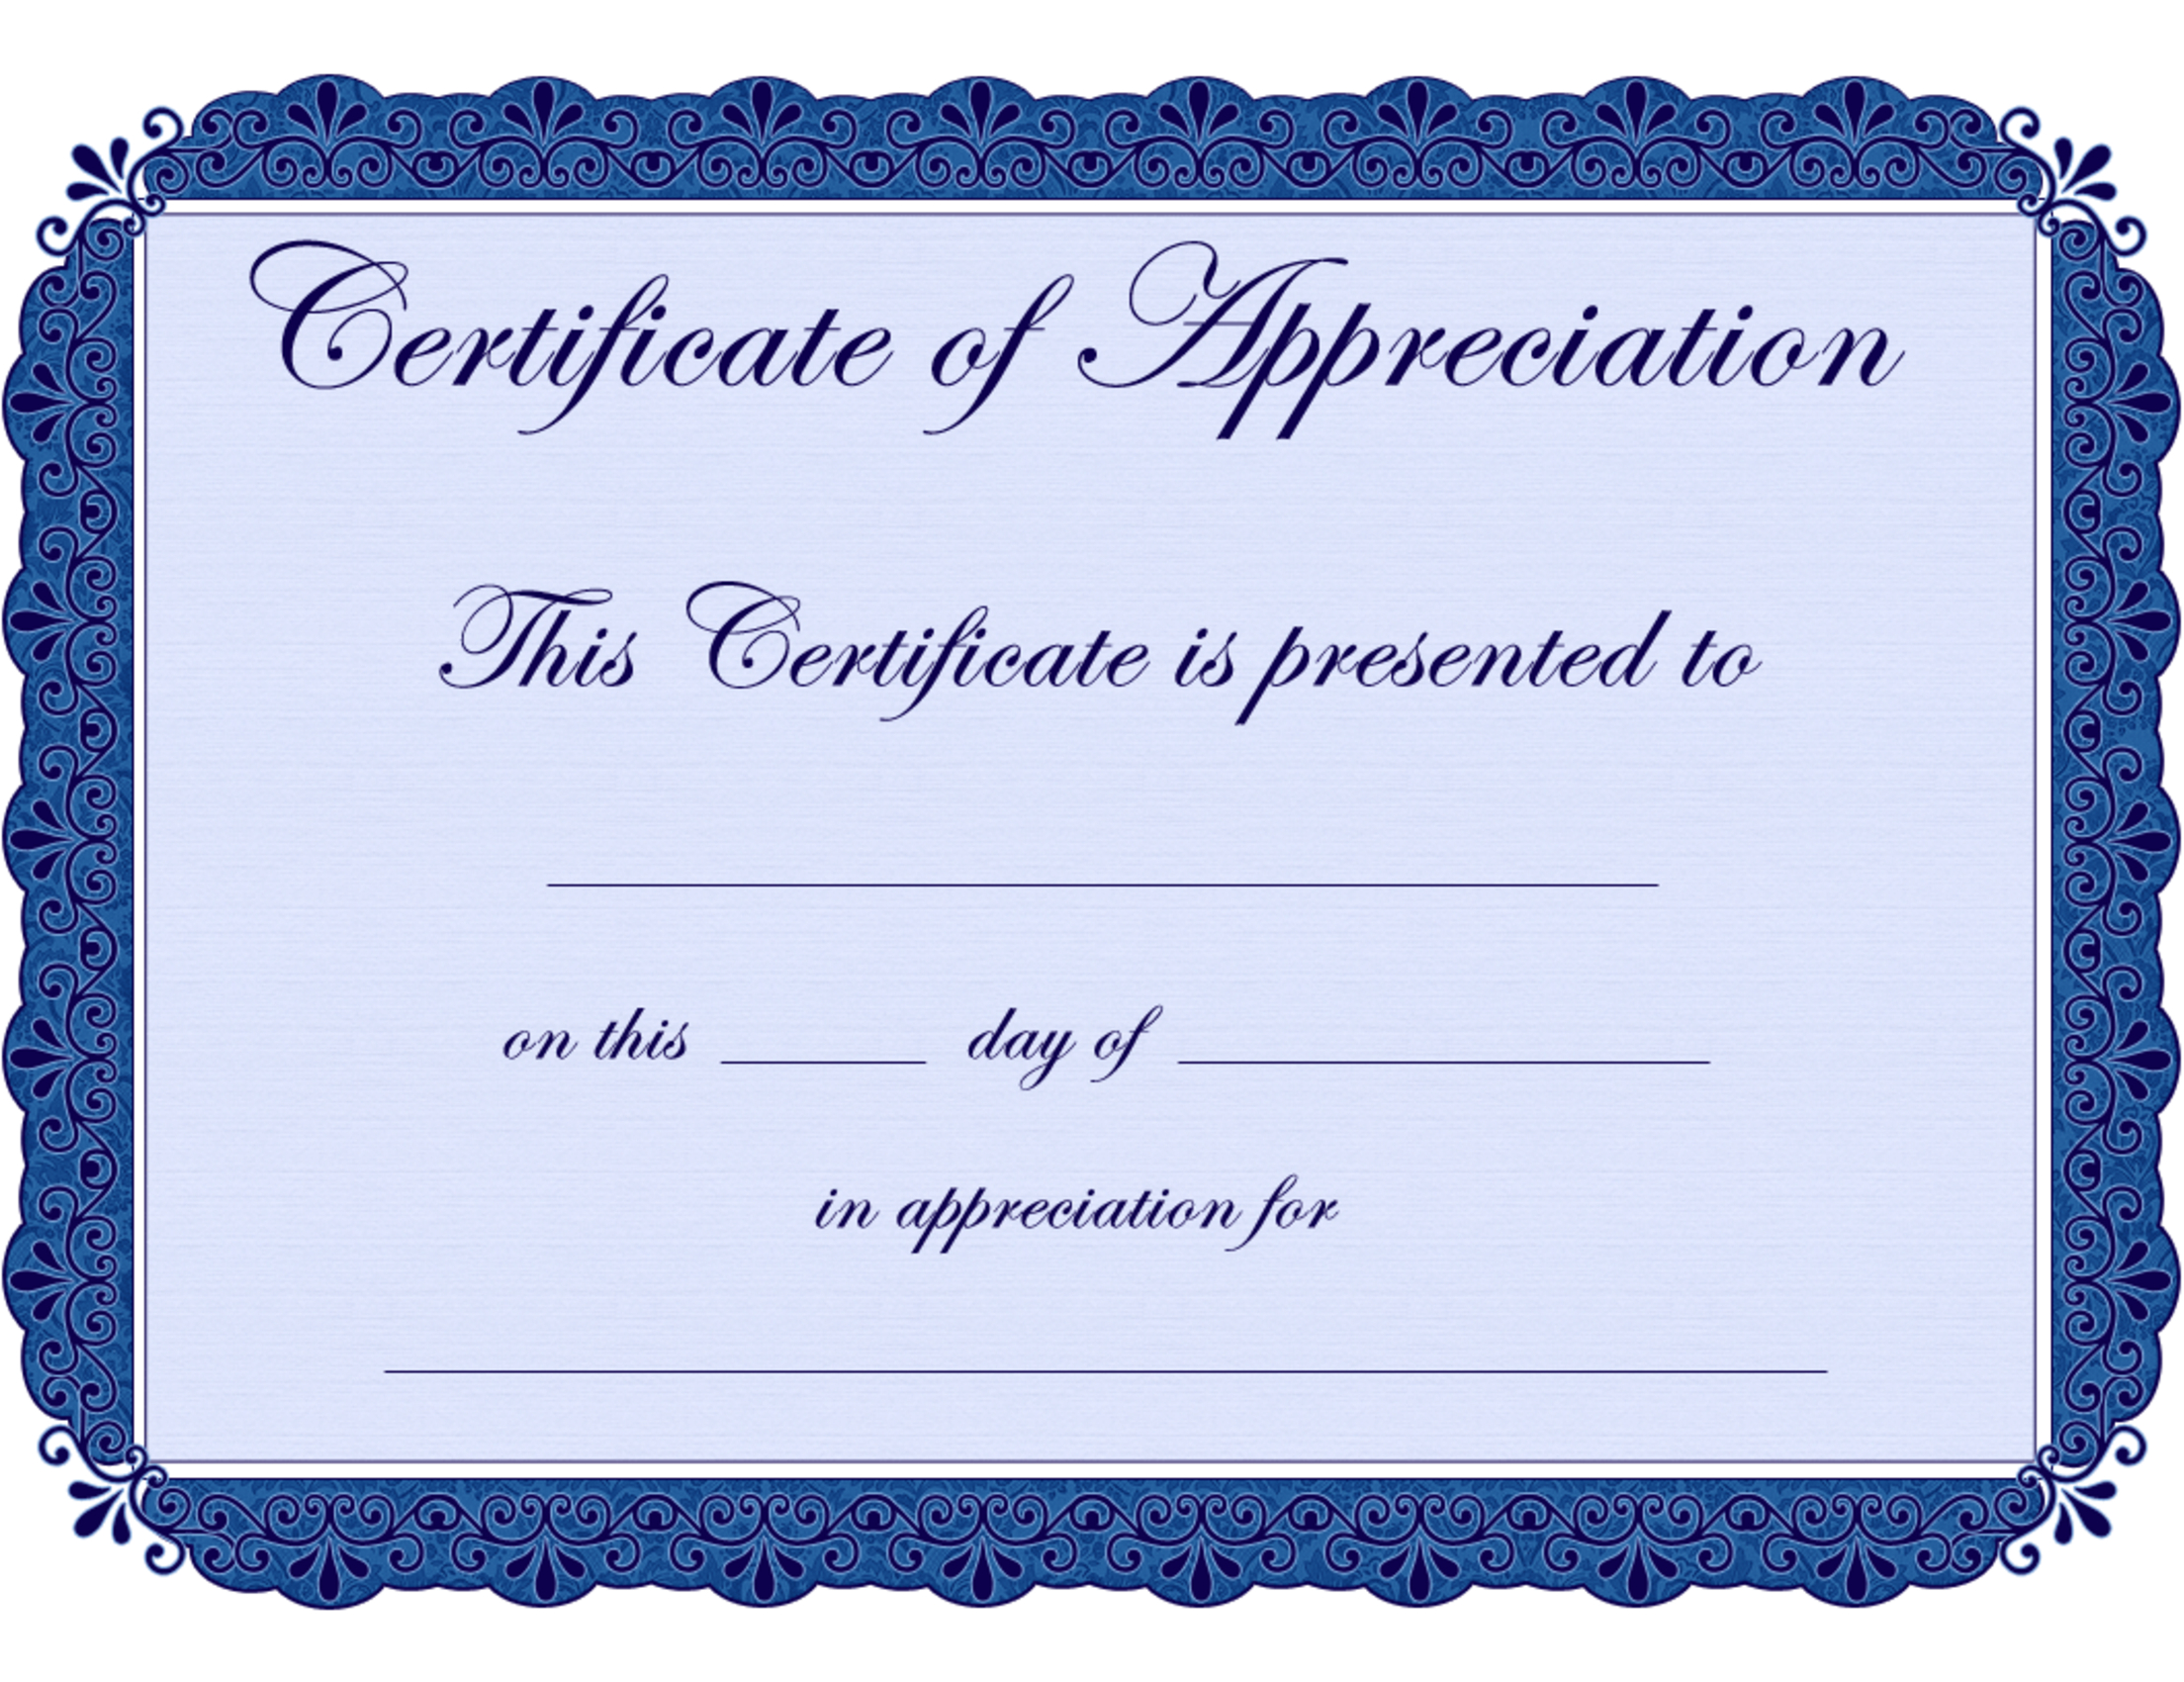 Free Printable Certificates Certificate Of Appreciation With Printable Certificate Of Recognition Templates Free